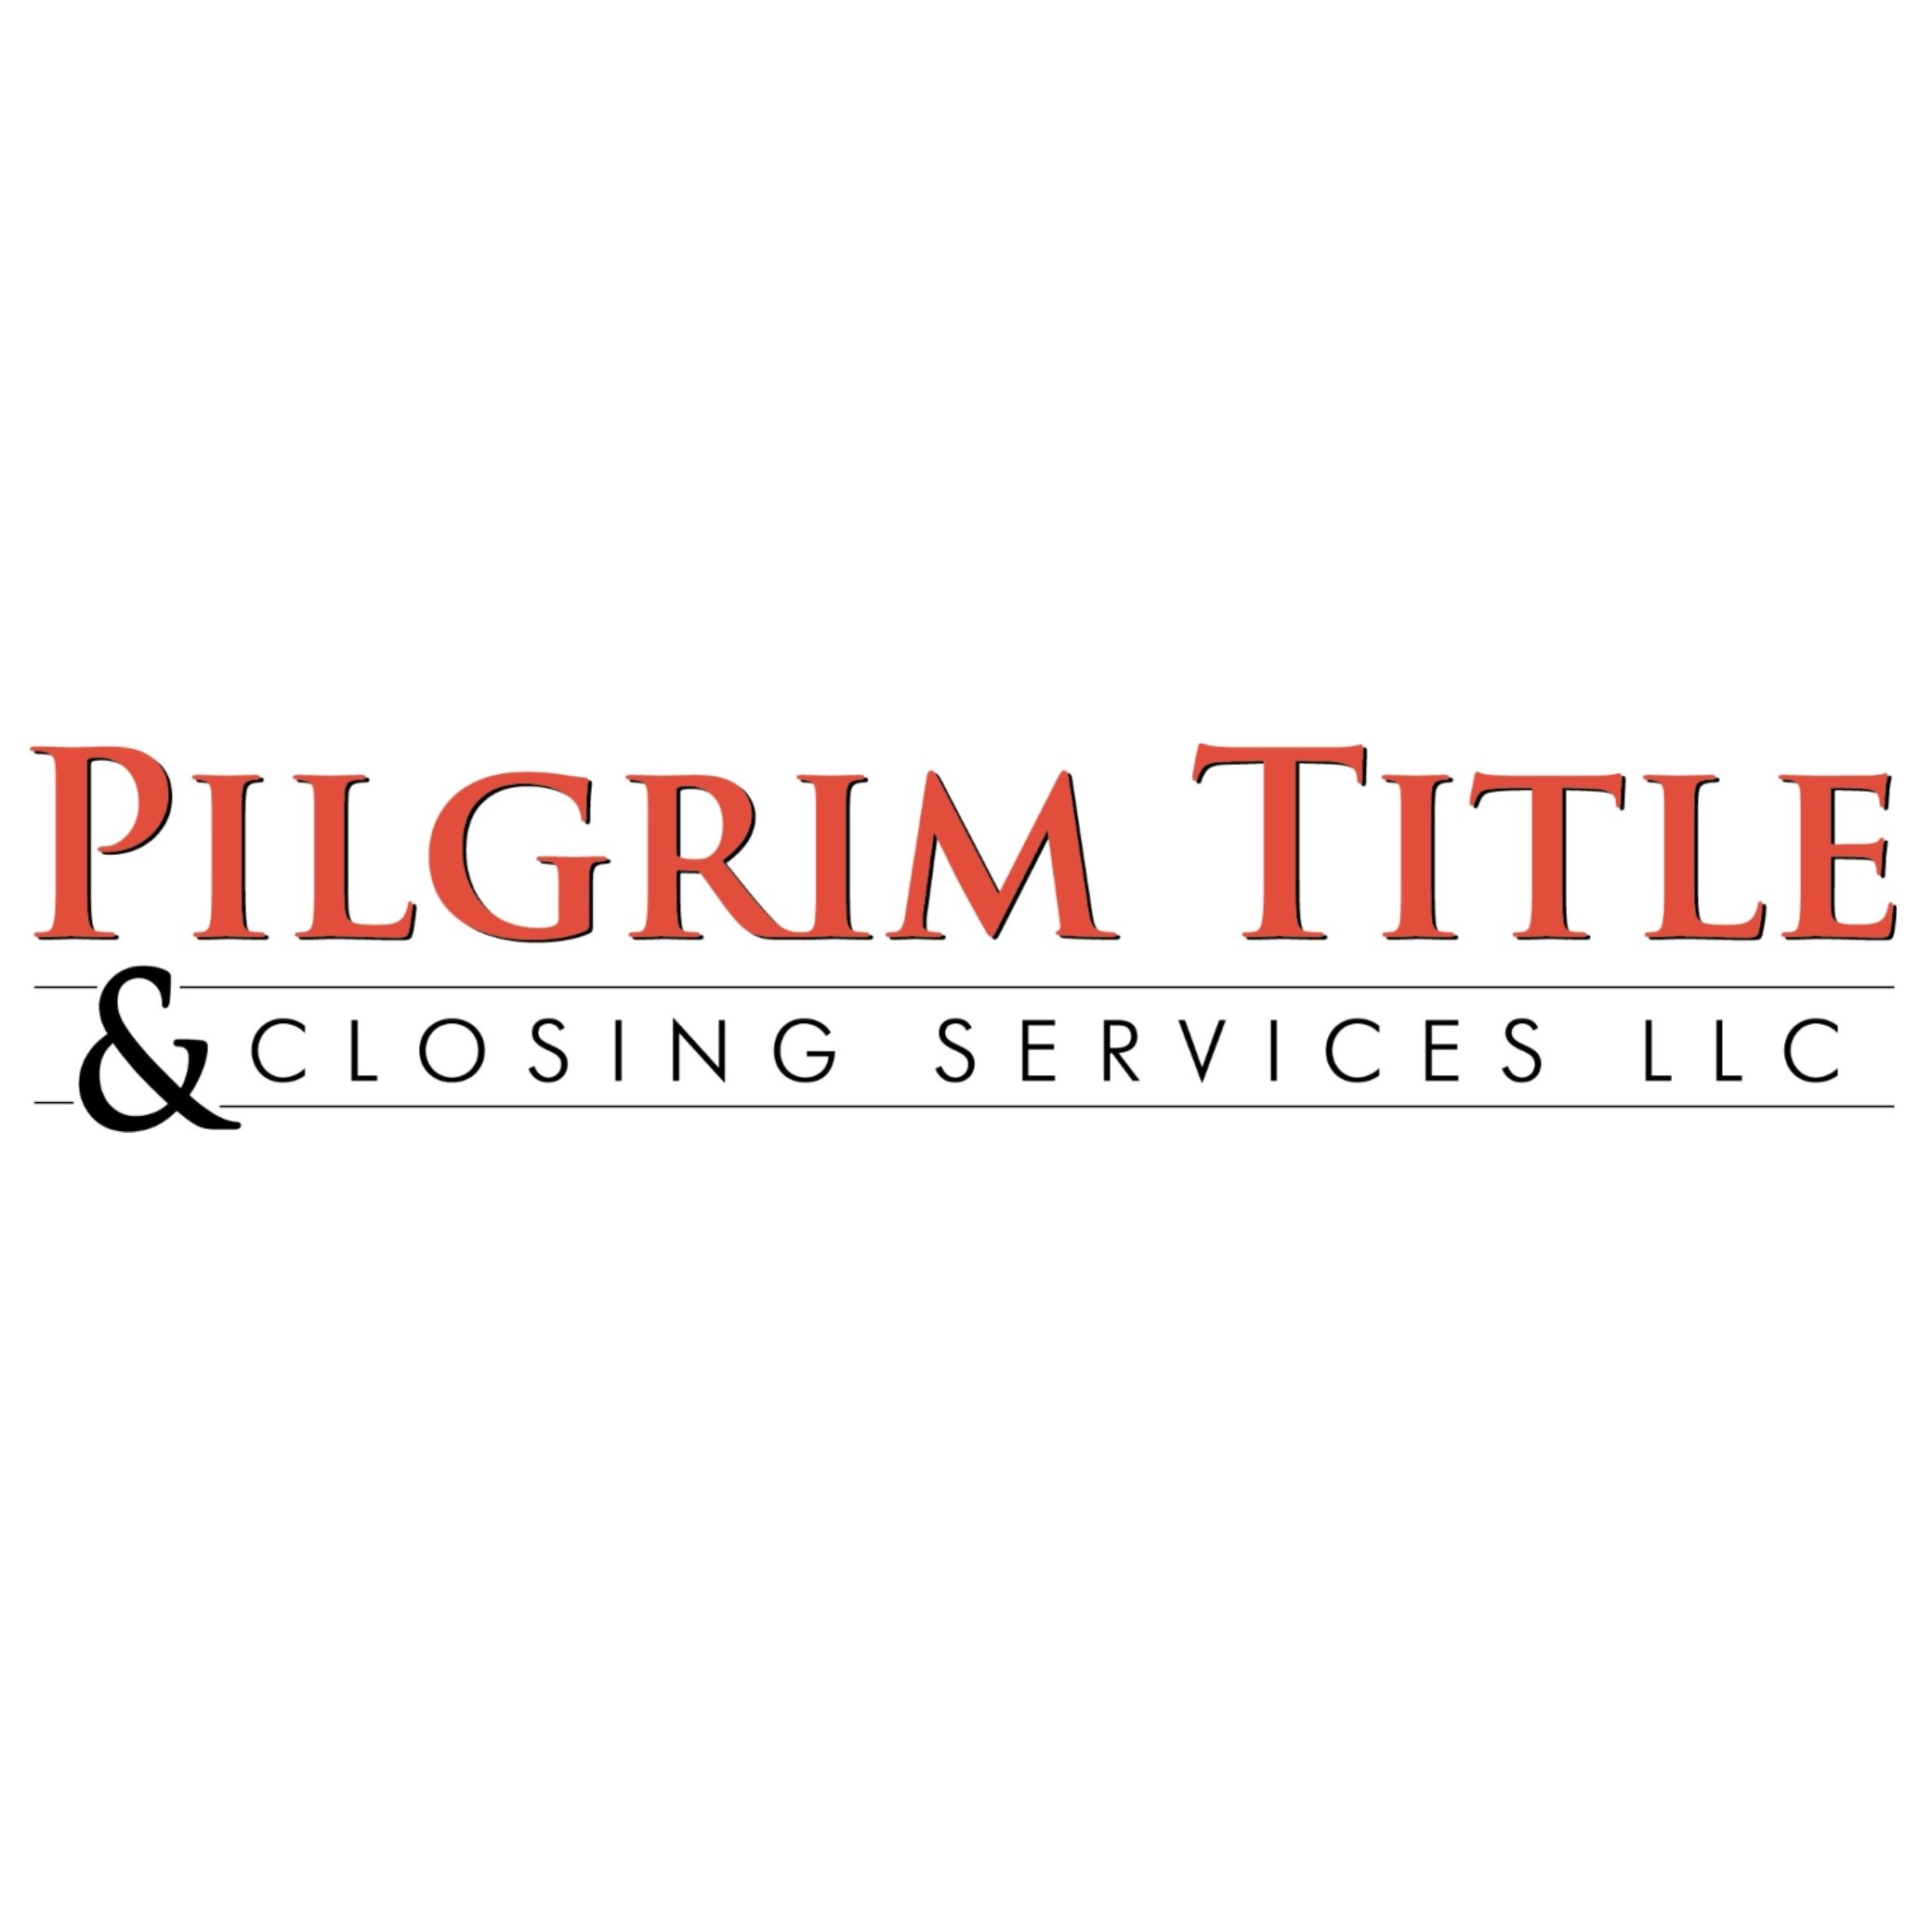 Pilgrim Title & Closing Services